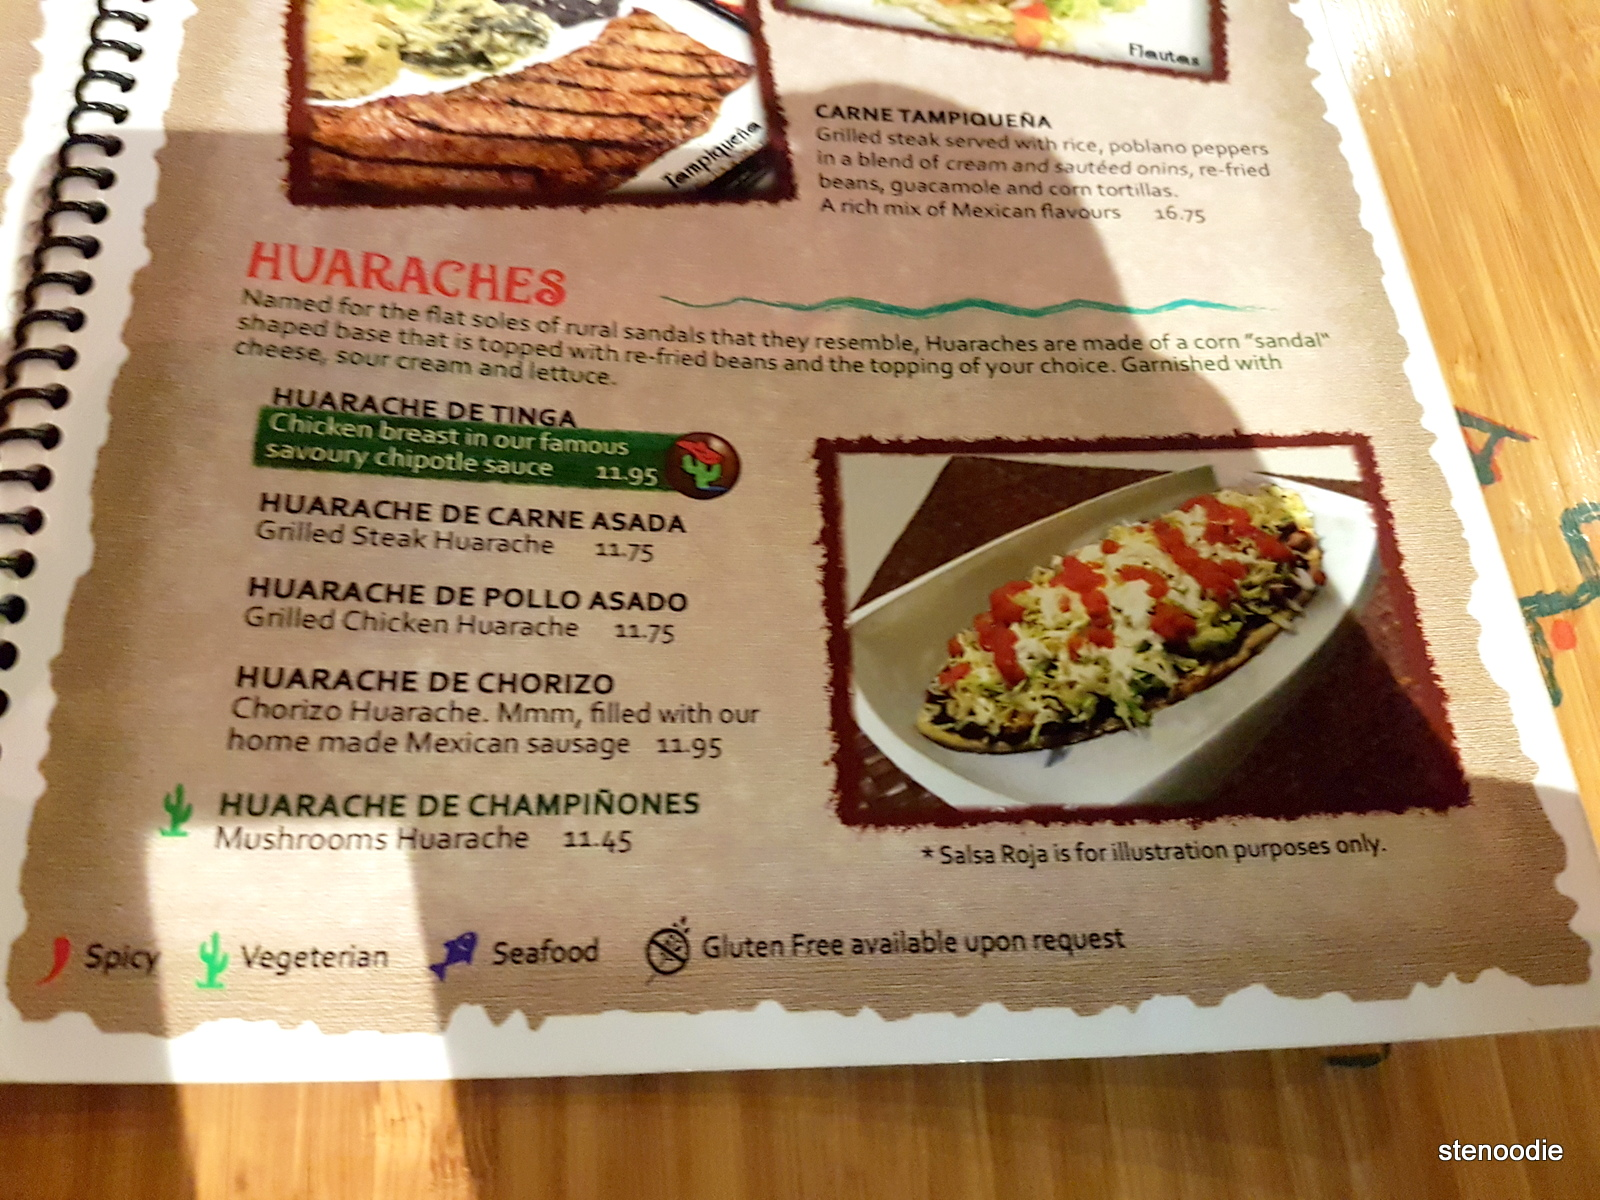 La Taquizza huaraches menu